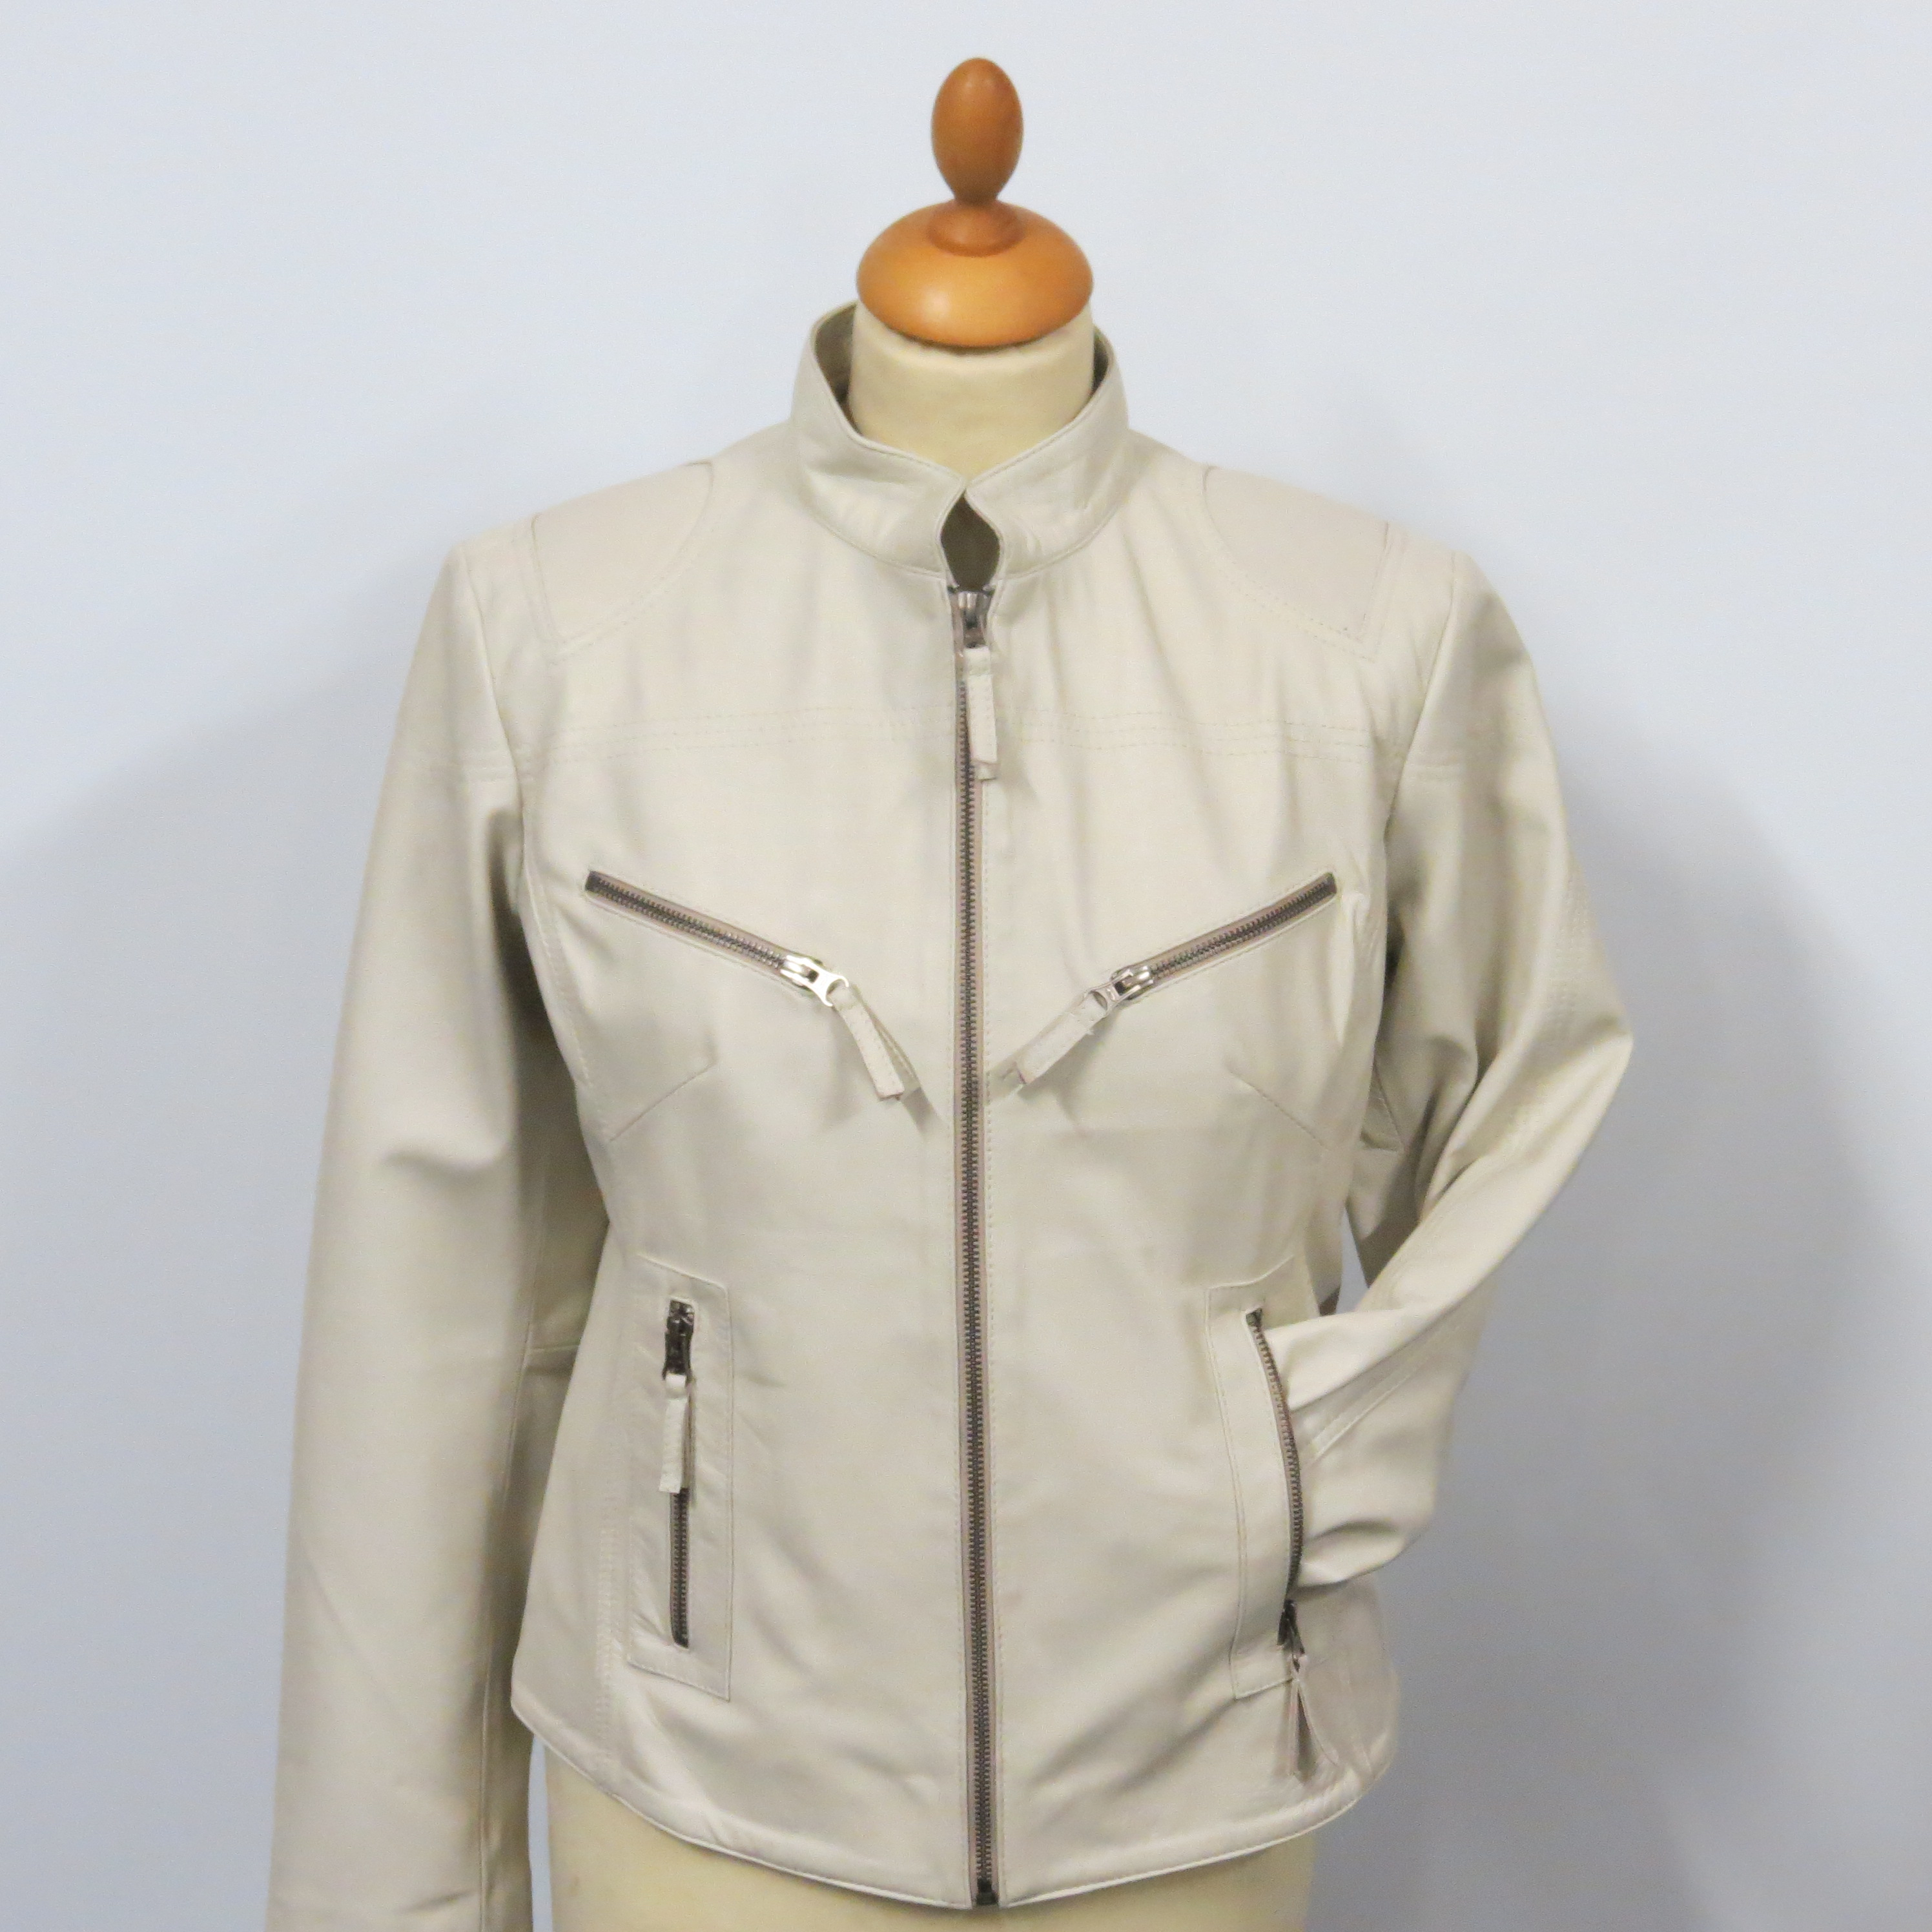 ladies128 ivory soft nappa leather